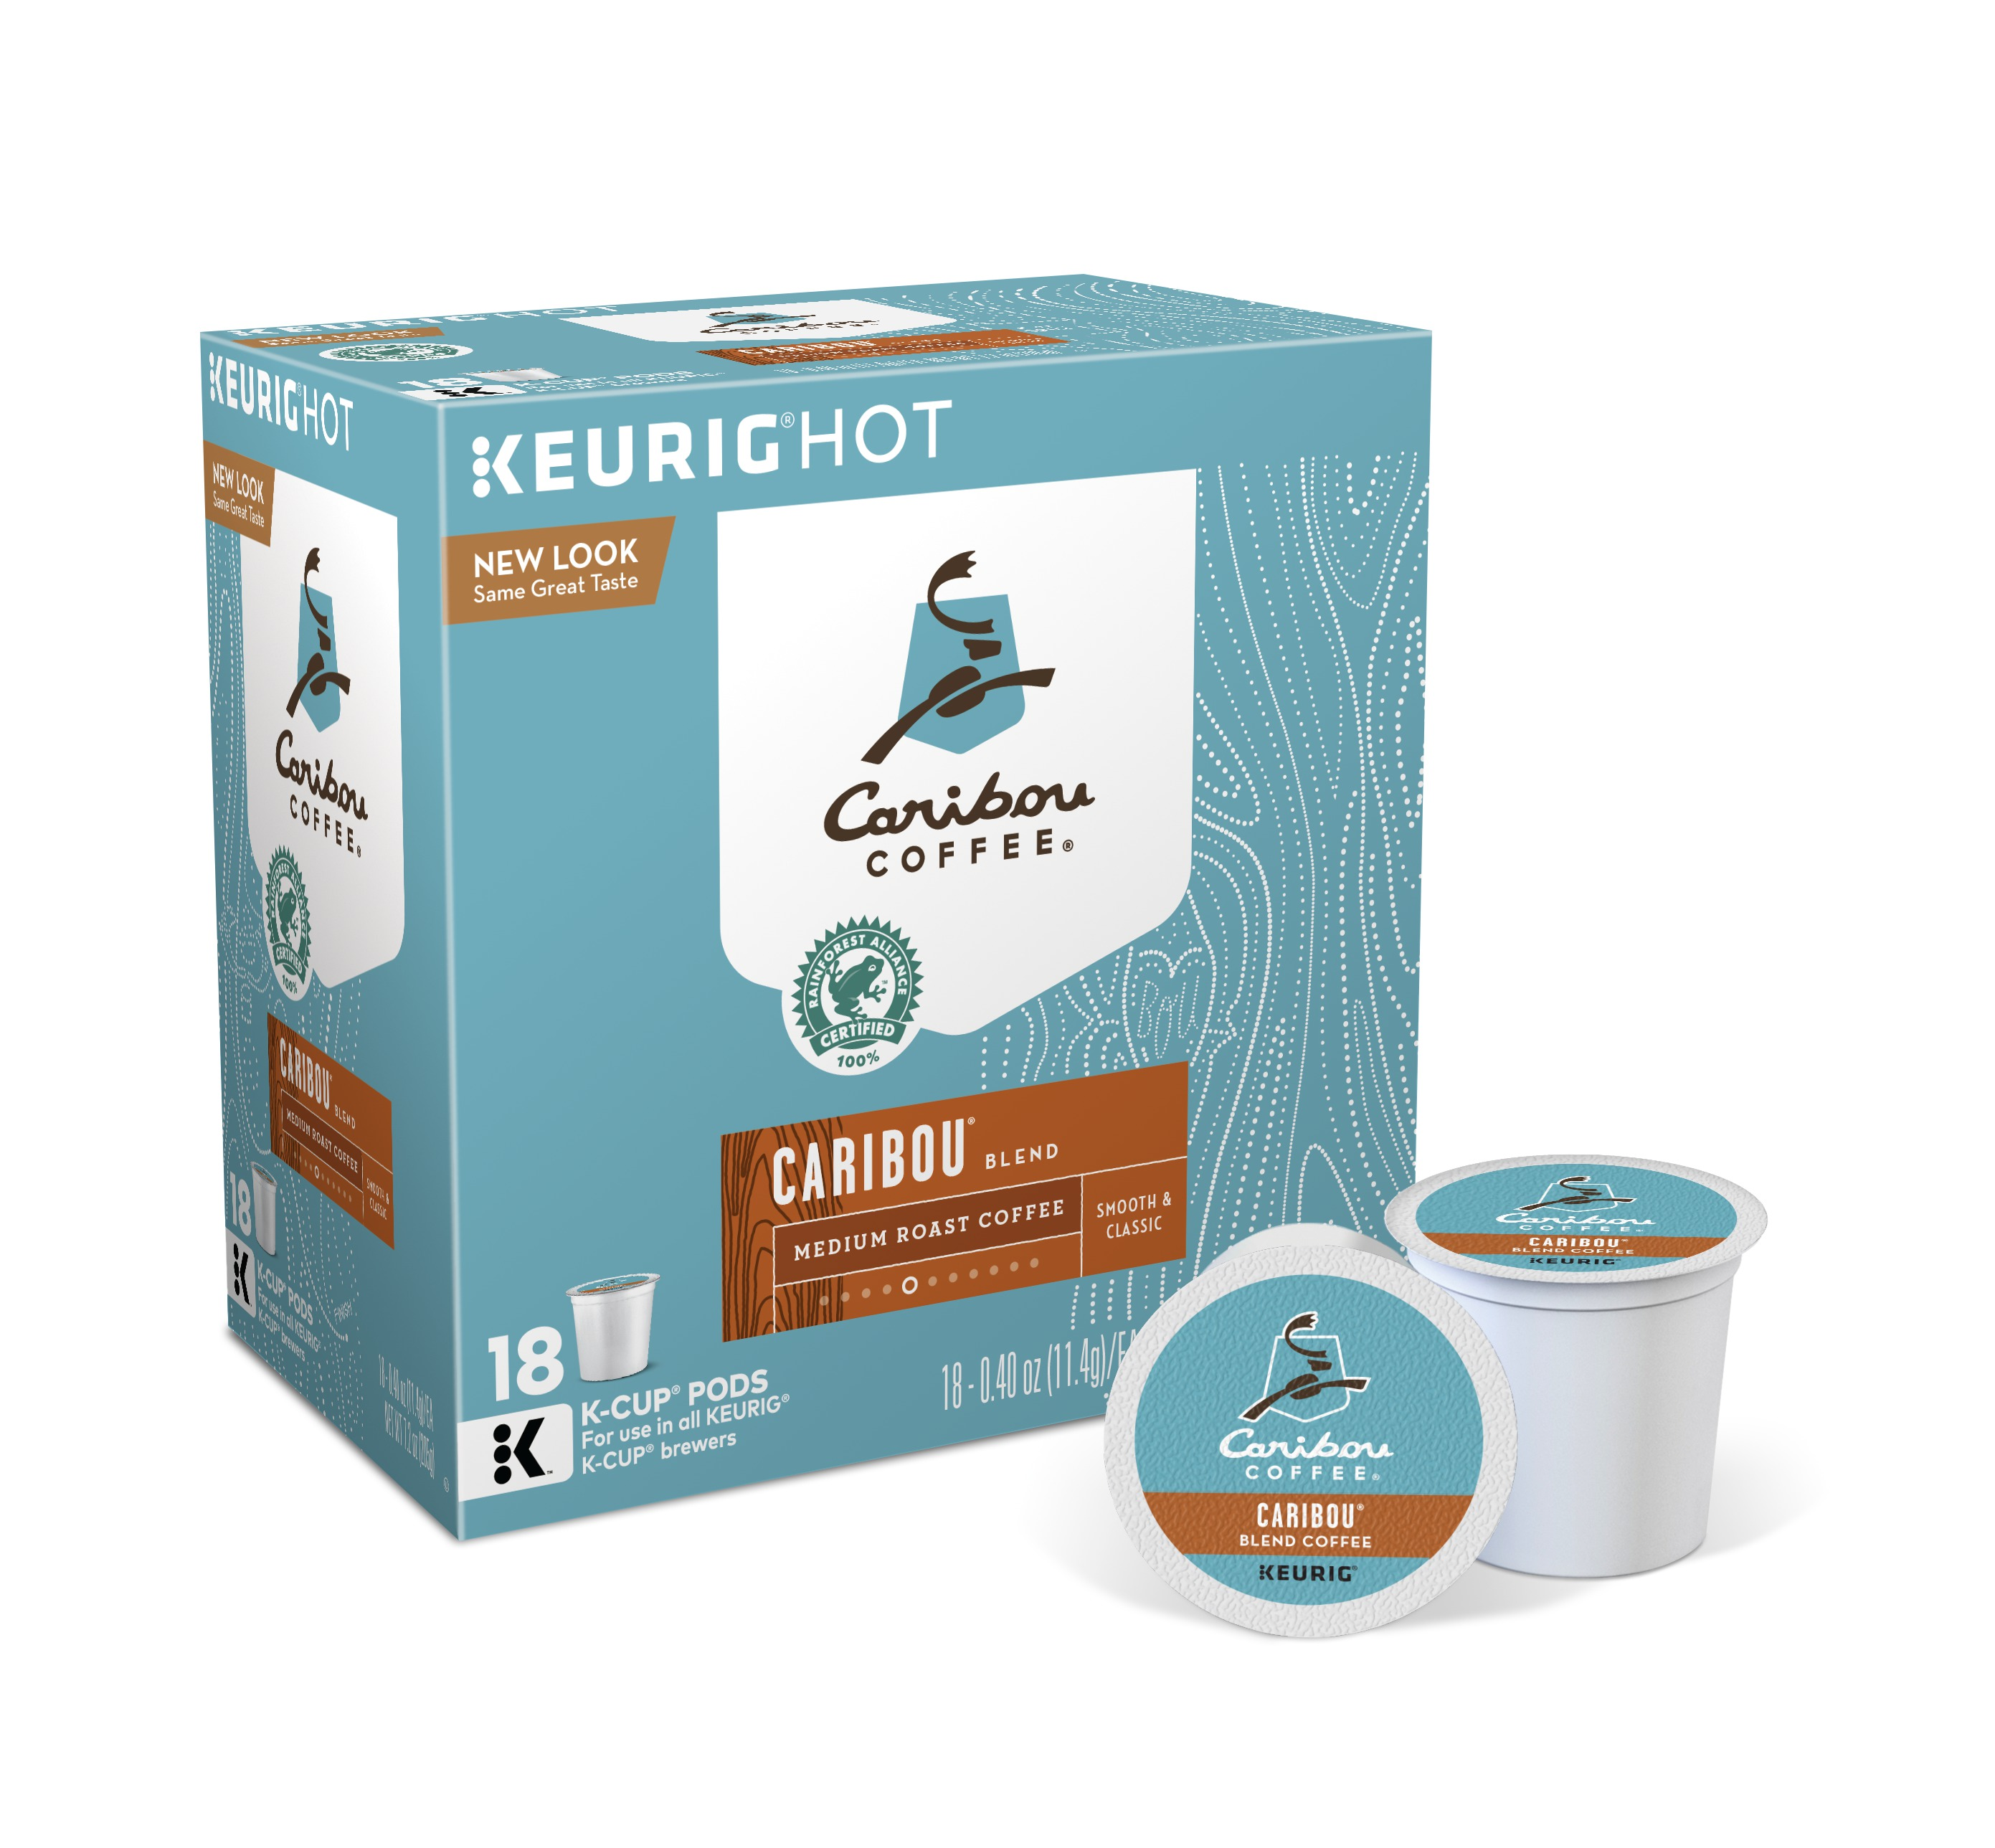 Caribou Coffee Caribou Blend Keurig Single-Serve K-Cup Pod, Medium Roast Coffee, 18 Count